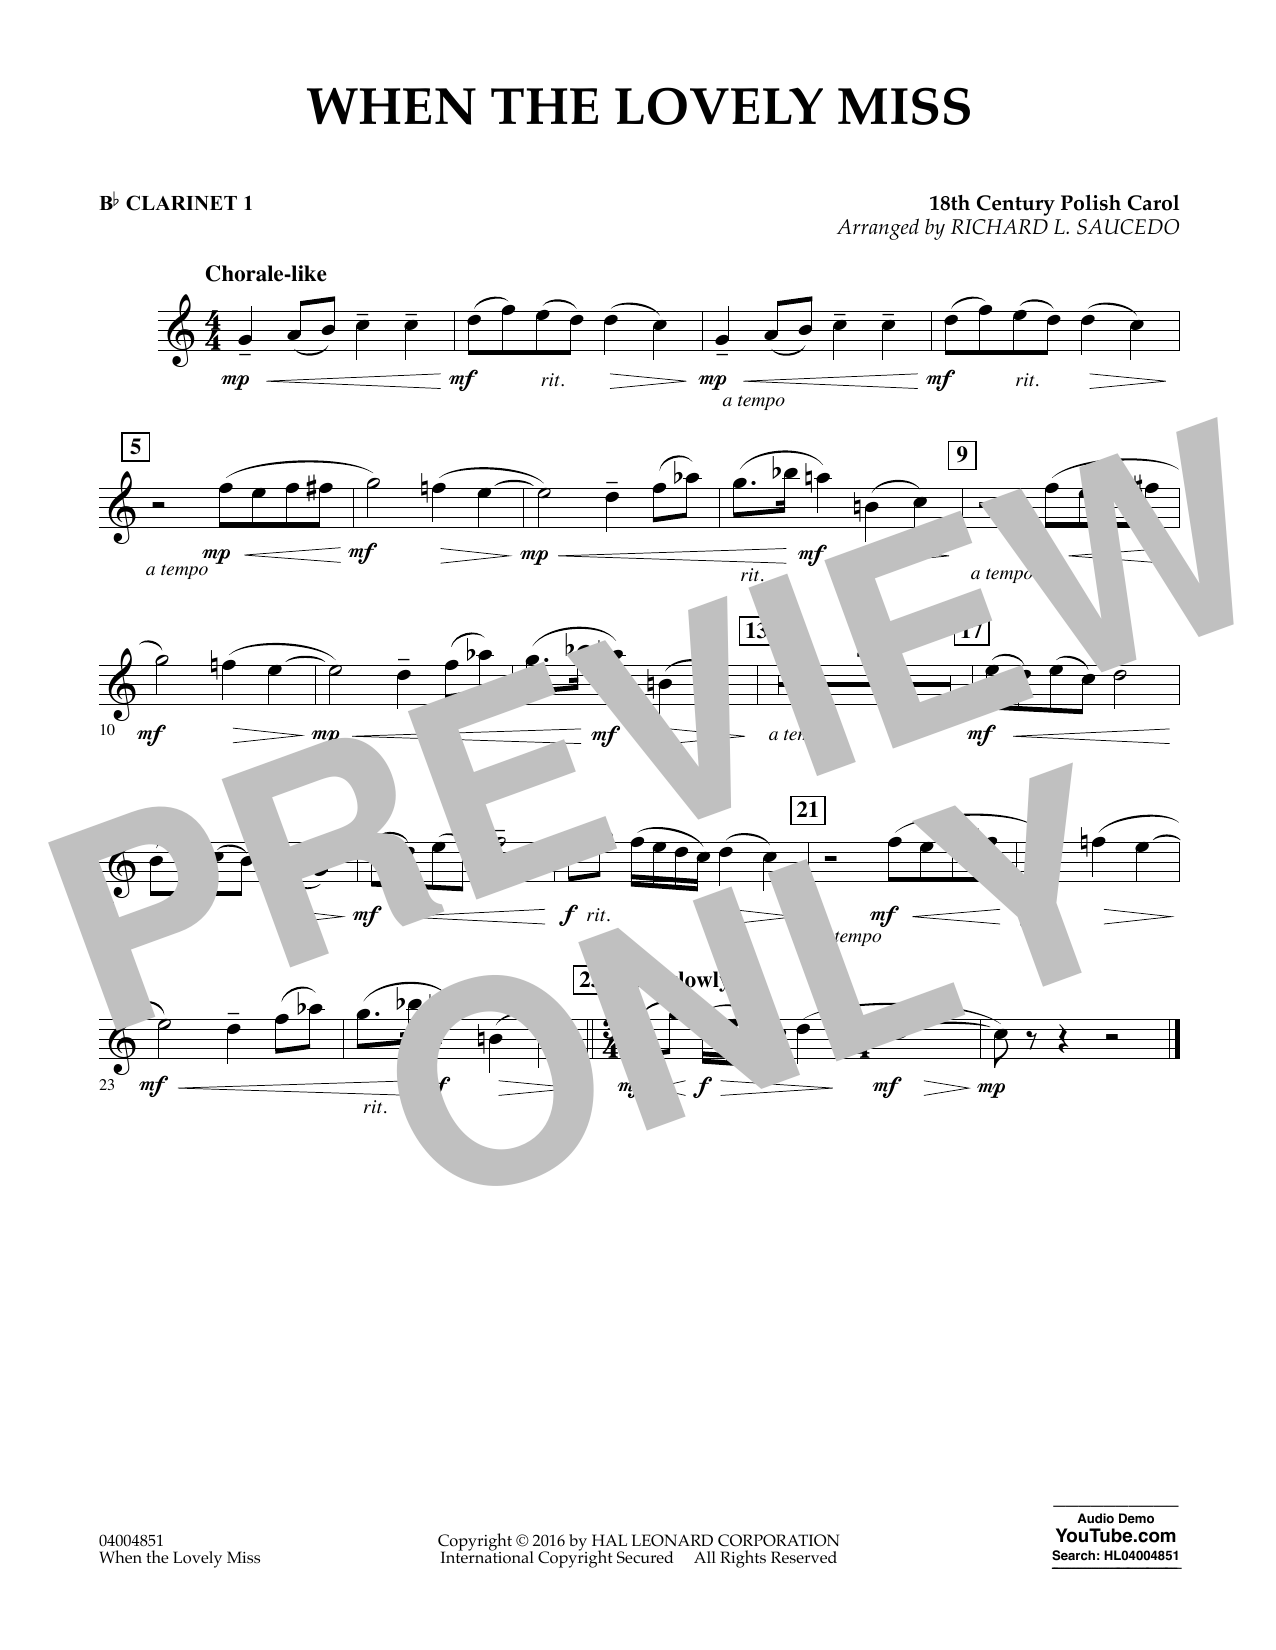 When the Lovely Miss (18th Century Polish Carol) - Bb Clarinet 1 (Concert Band)